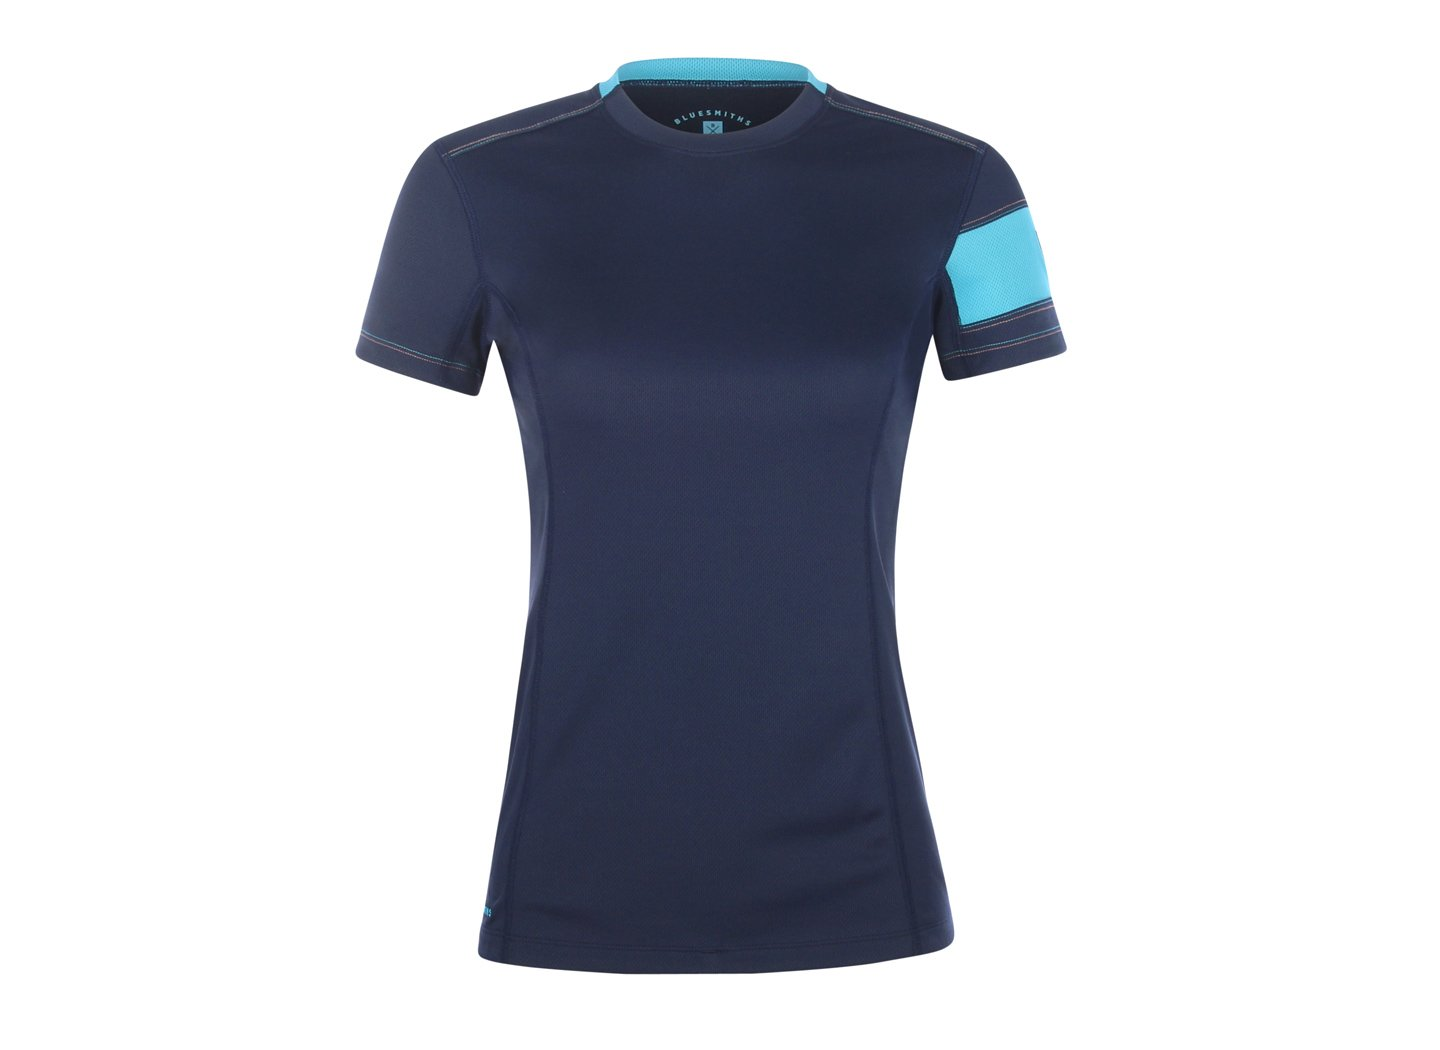 The Lane Hydrophobic (Water Repellent) Shirt for Women